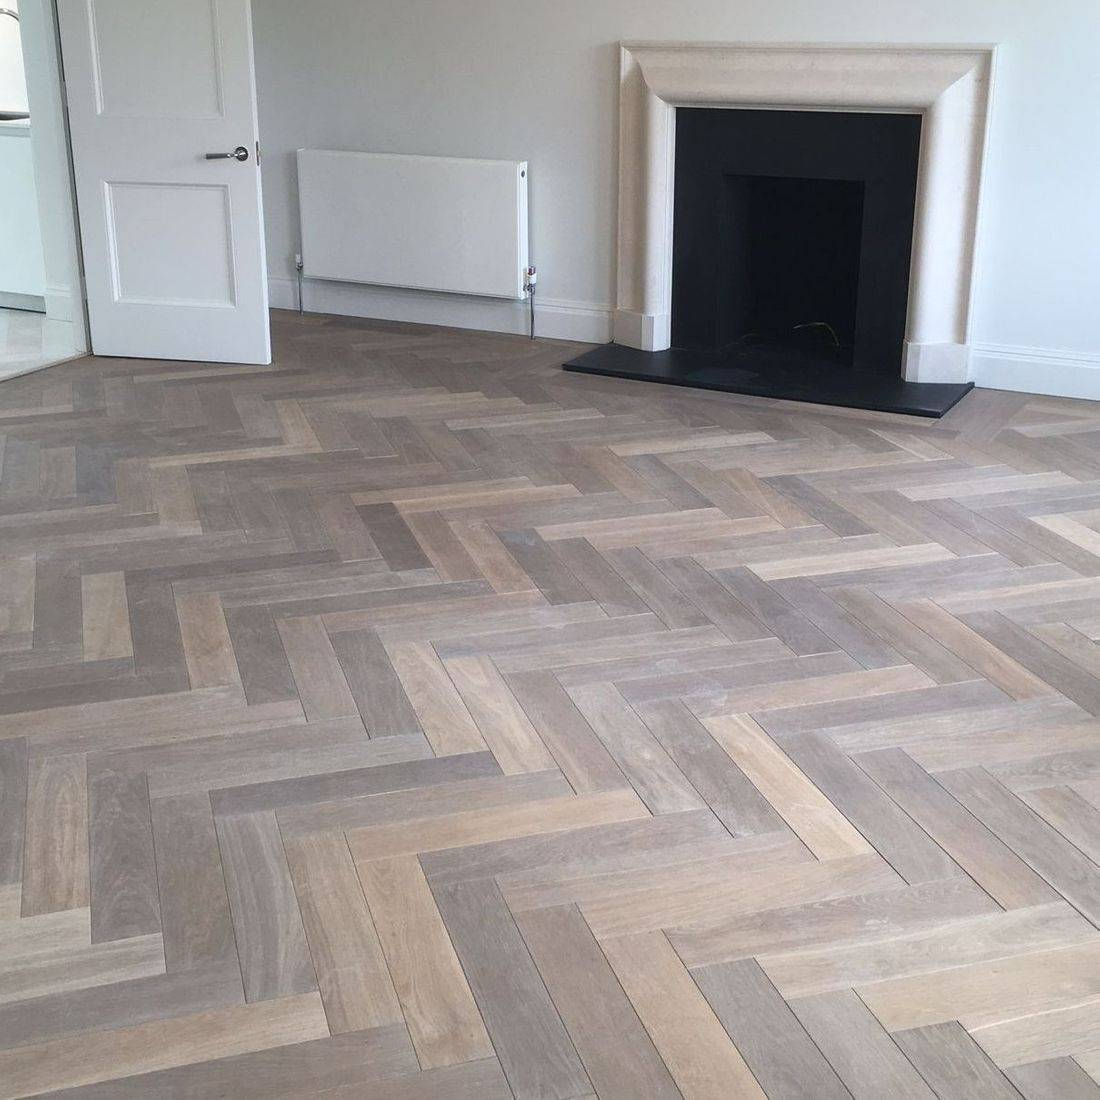 Smoked & White Oiled Herringbone